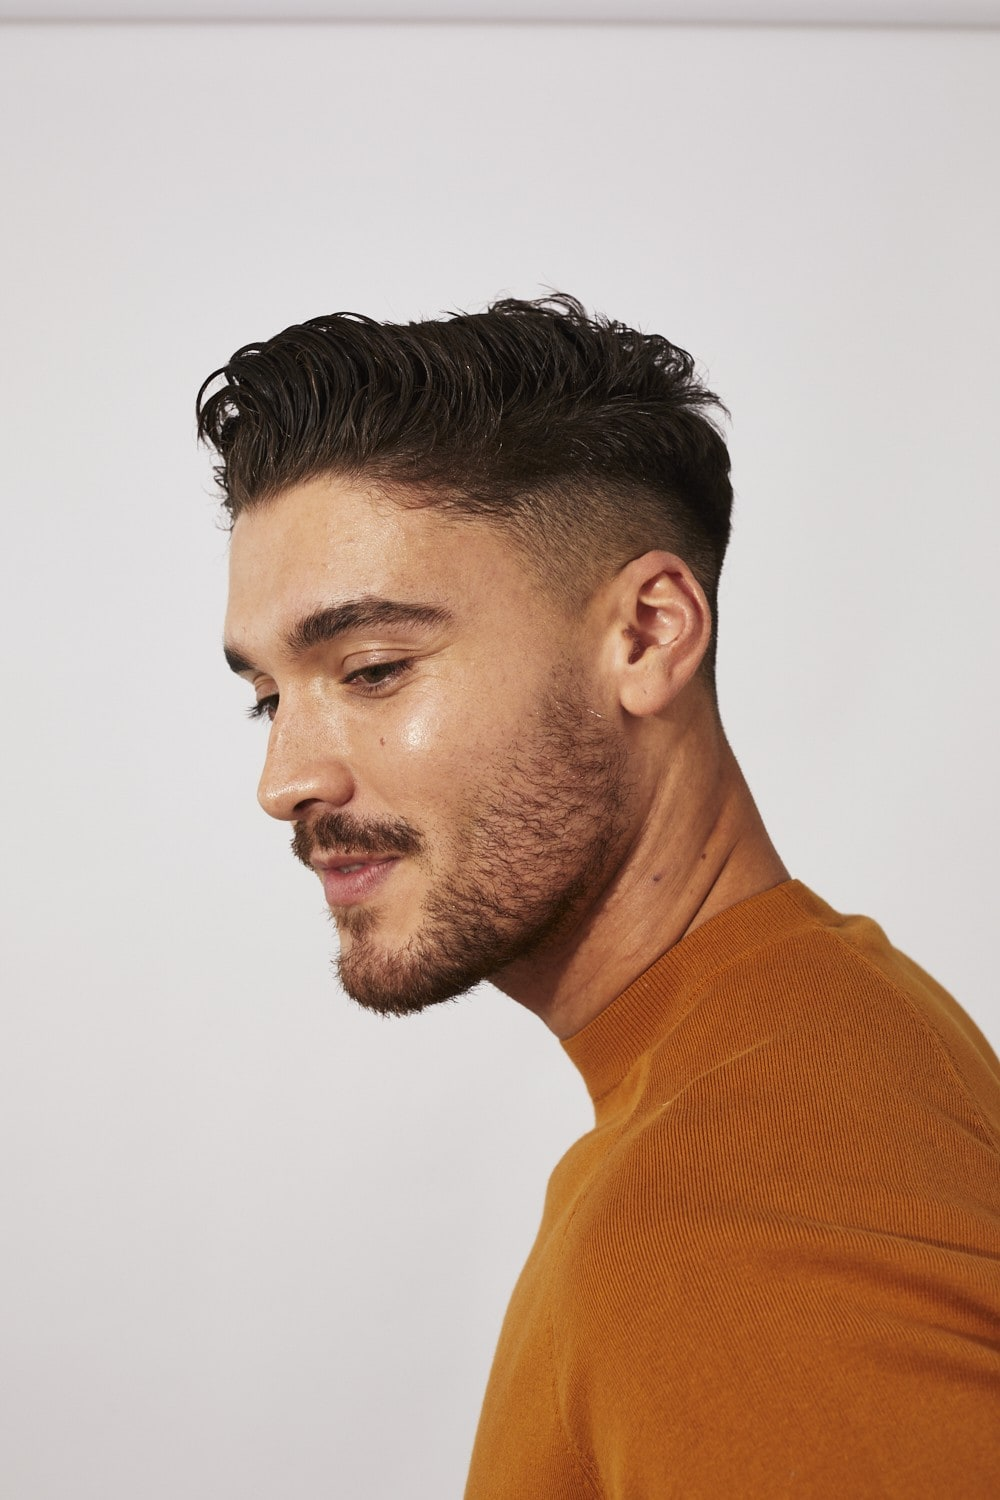 How to Cut Your Own Hair At Home for Men: Steps & Tips